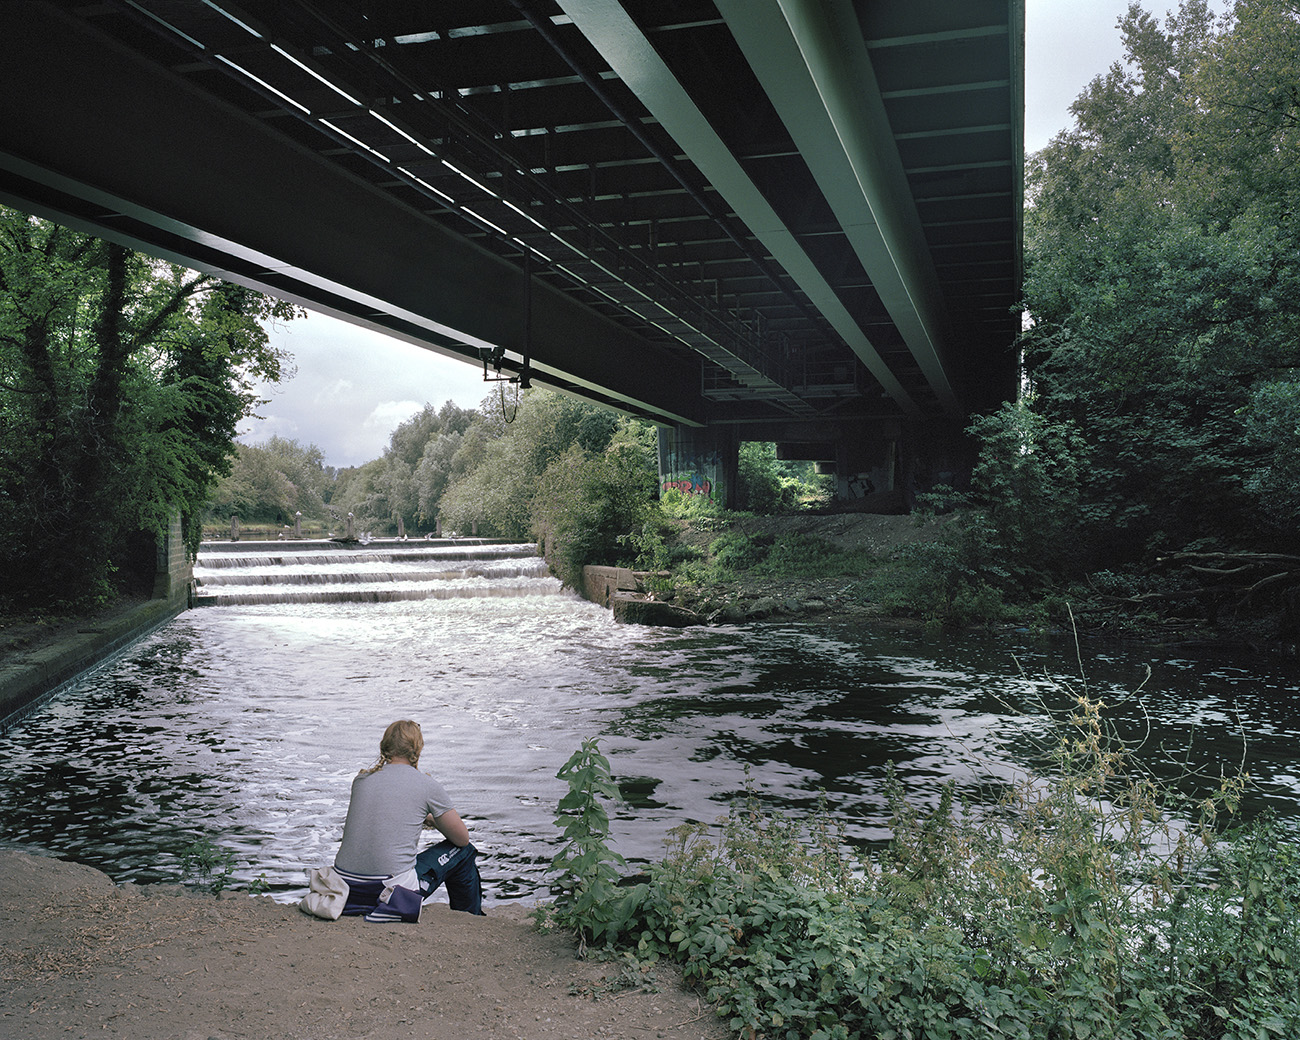 A lone man sits contemplating on the banks of the river, beneath the motorway pass